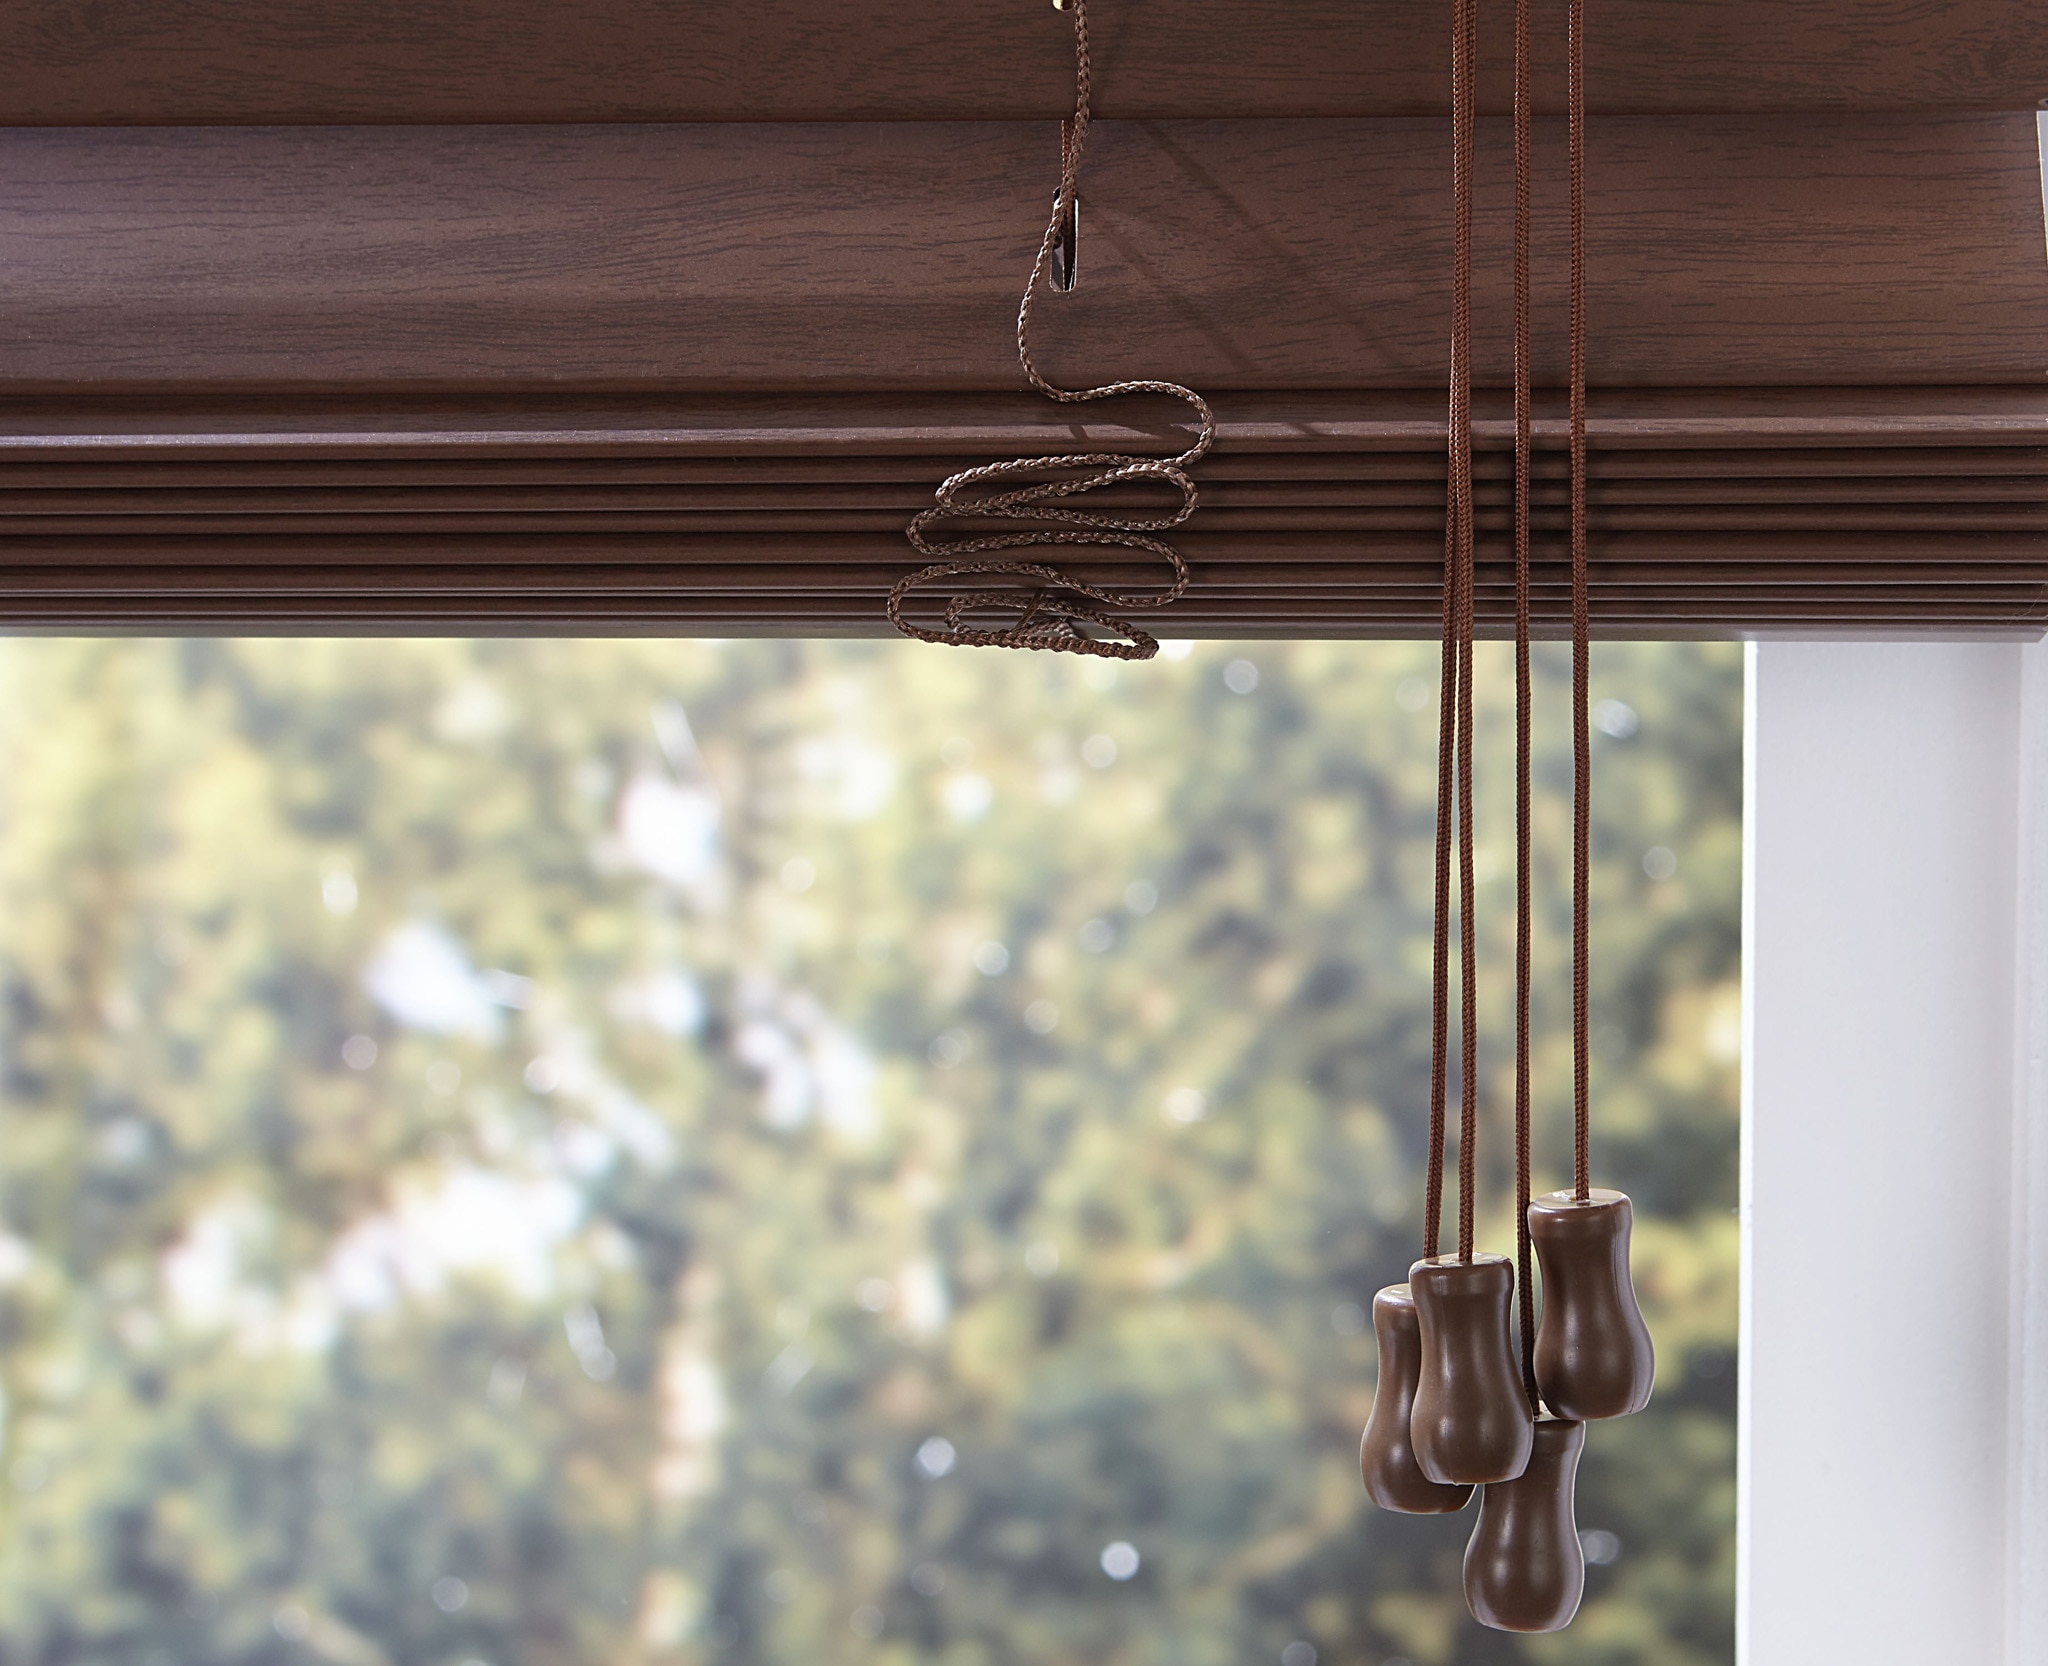 Window blinds for sale window shade price list brands amp review - Window Blinds For Sale Window Shade Price List Brands Amp Review 30